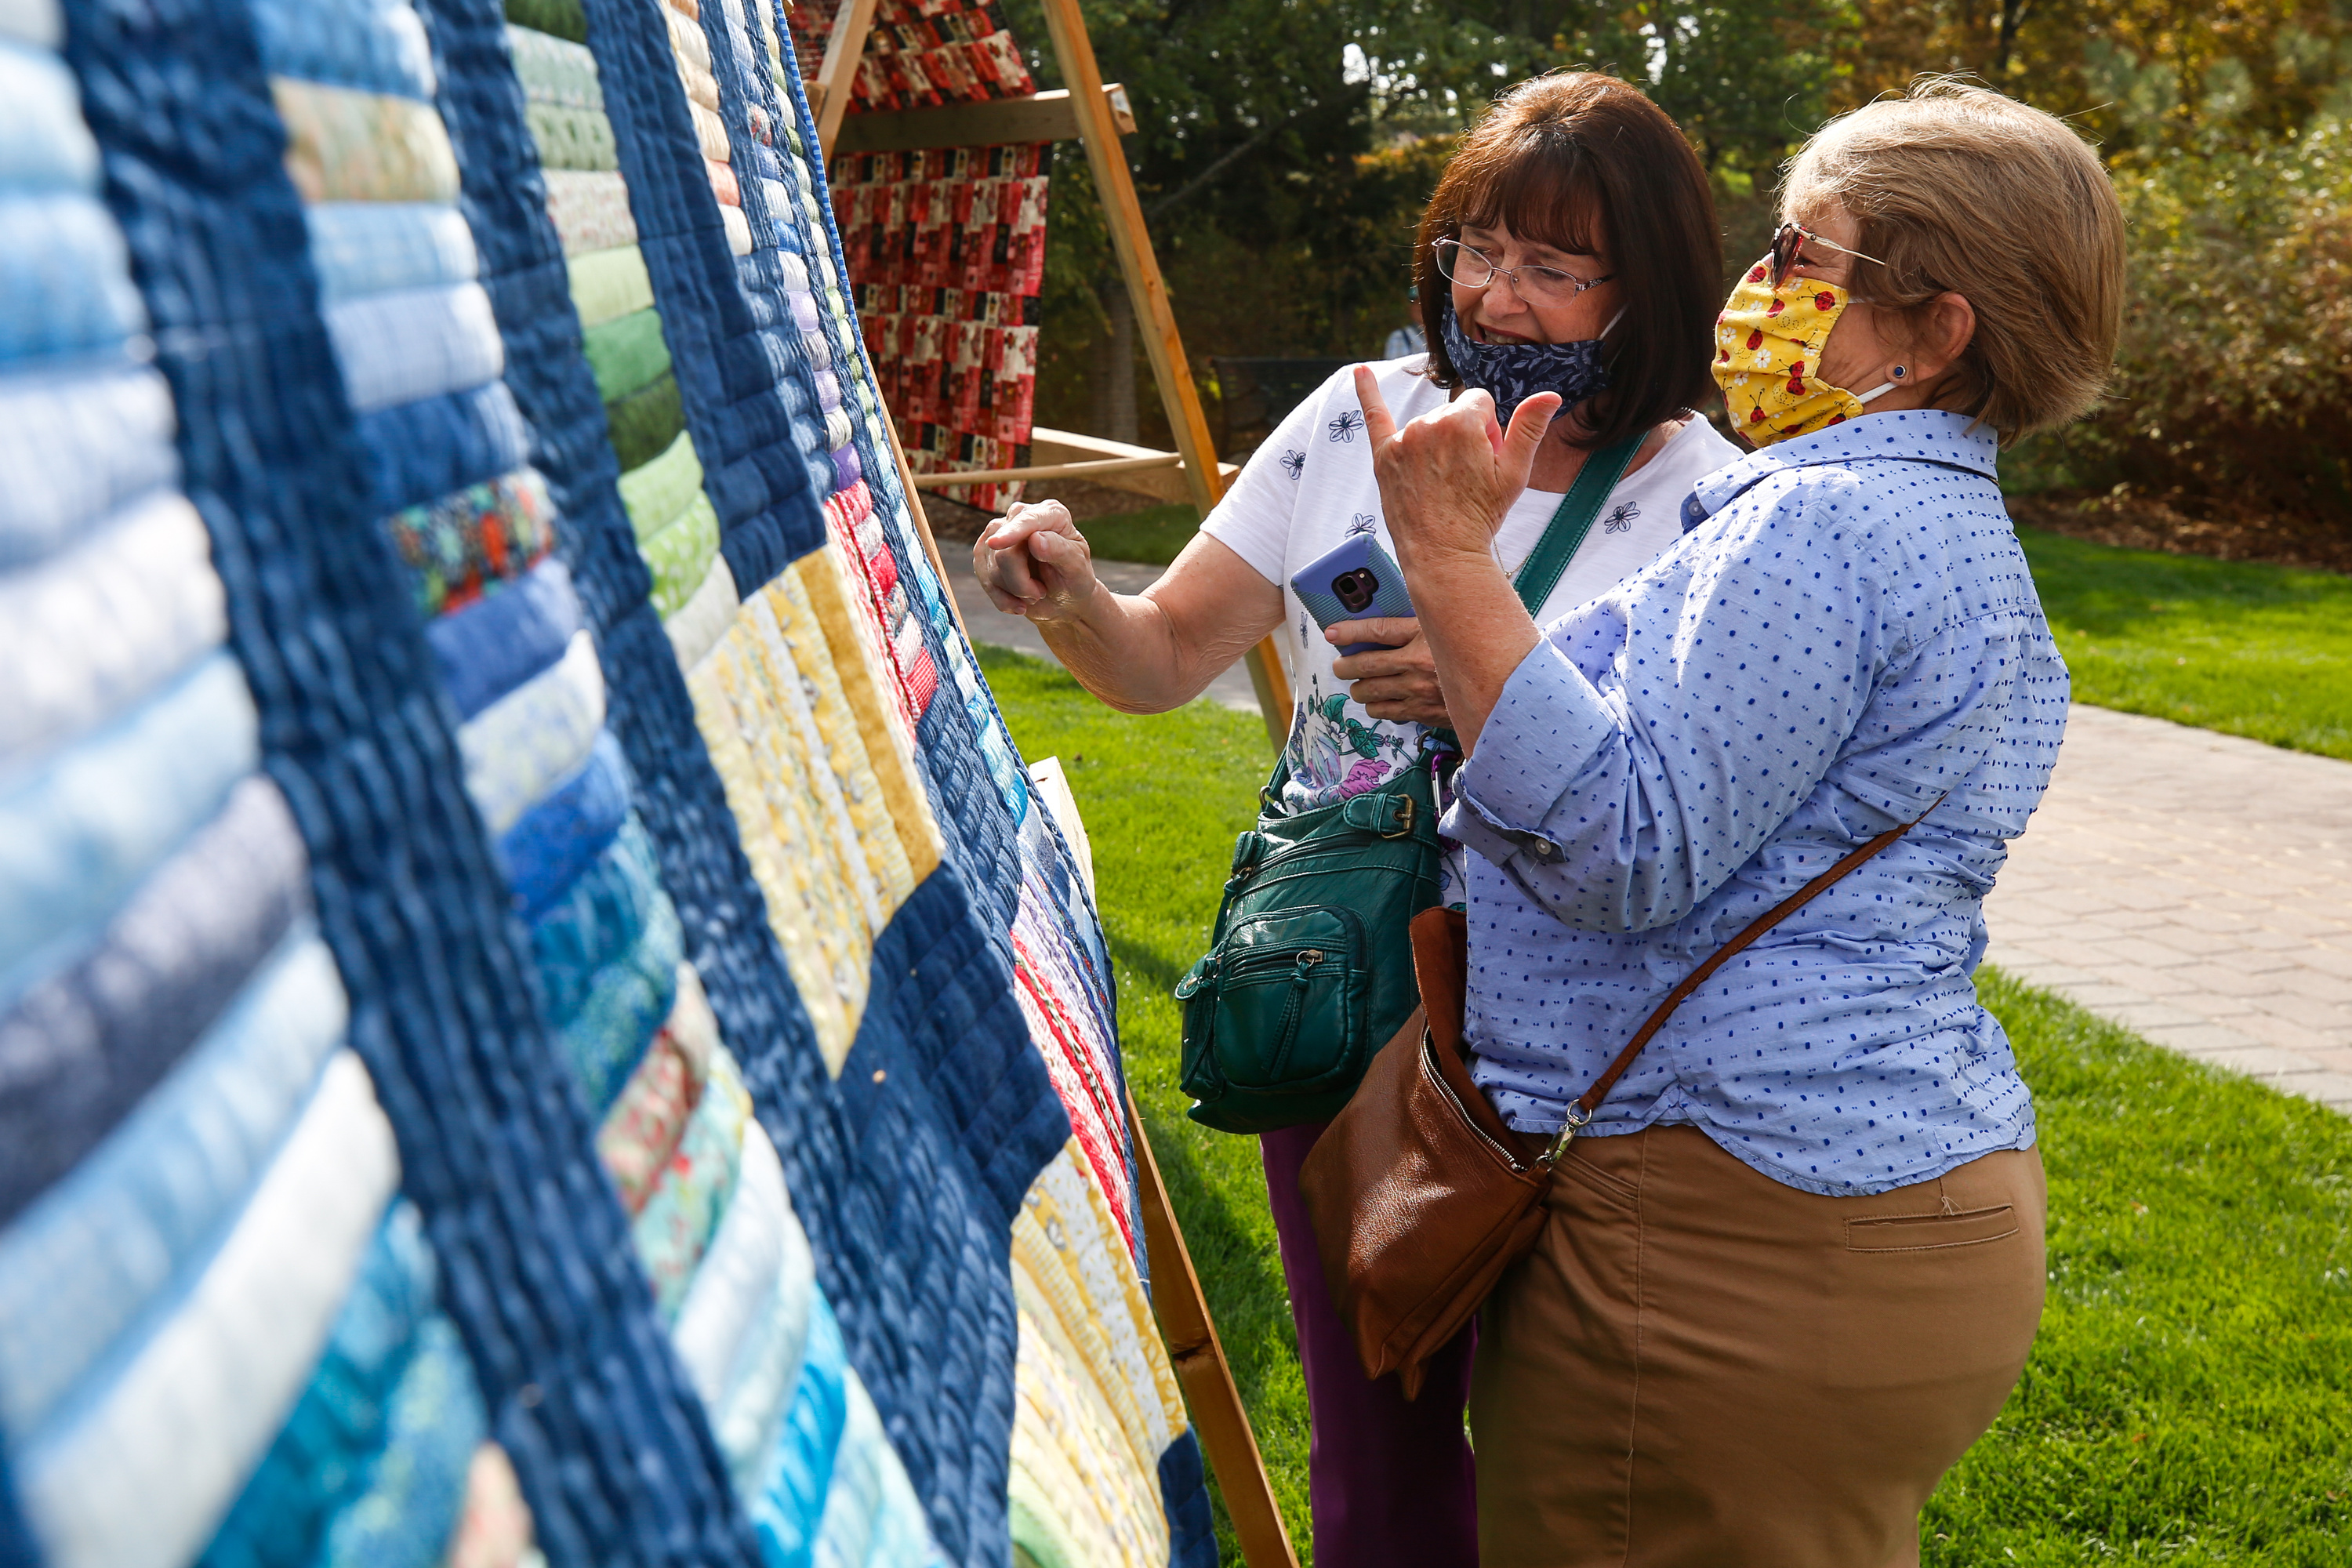 Marilyn Robson, left, and Christine Caldwell talks about quilt during the Garden of Quilts show at Ashton Gardens at Thanksgiving Point in Lehi on Friday, Sept. 18, 2020.